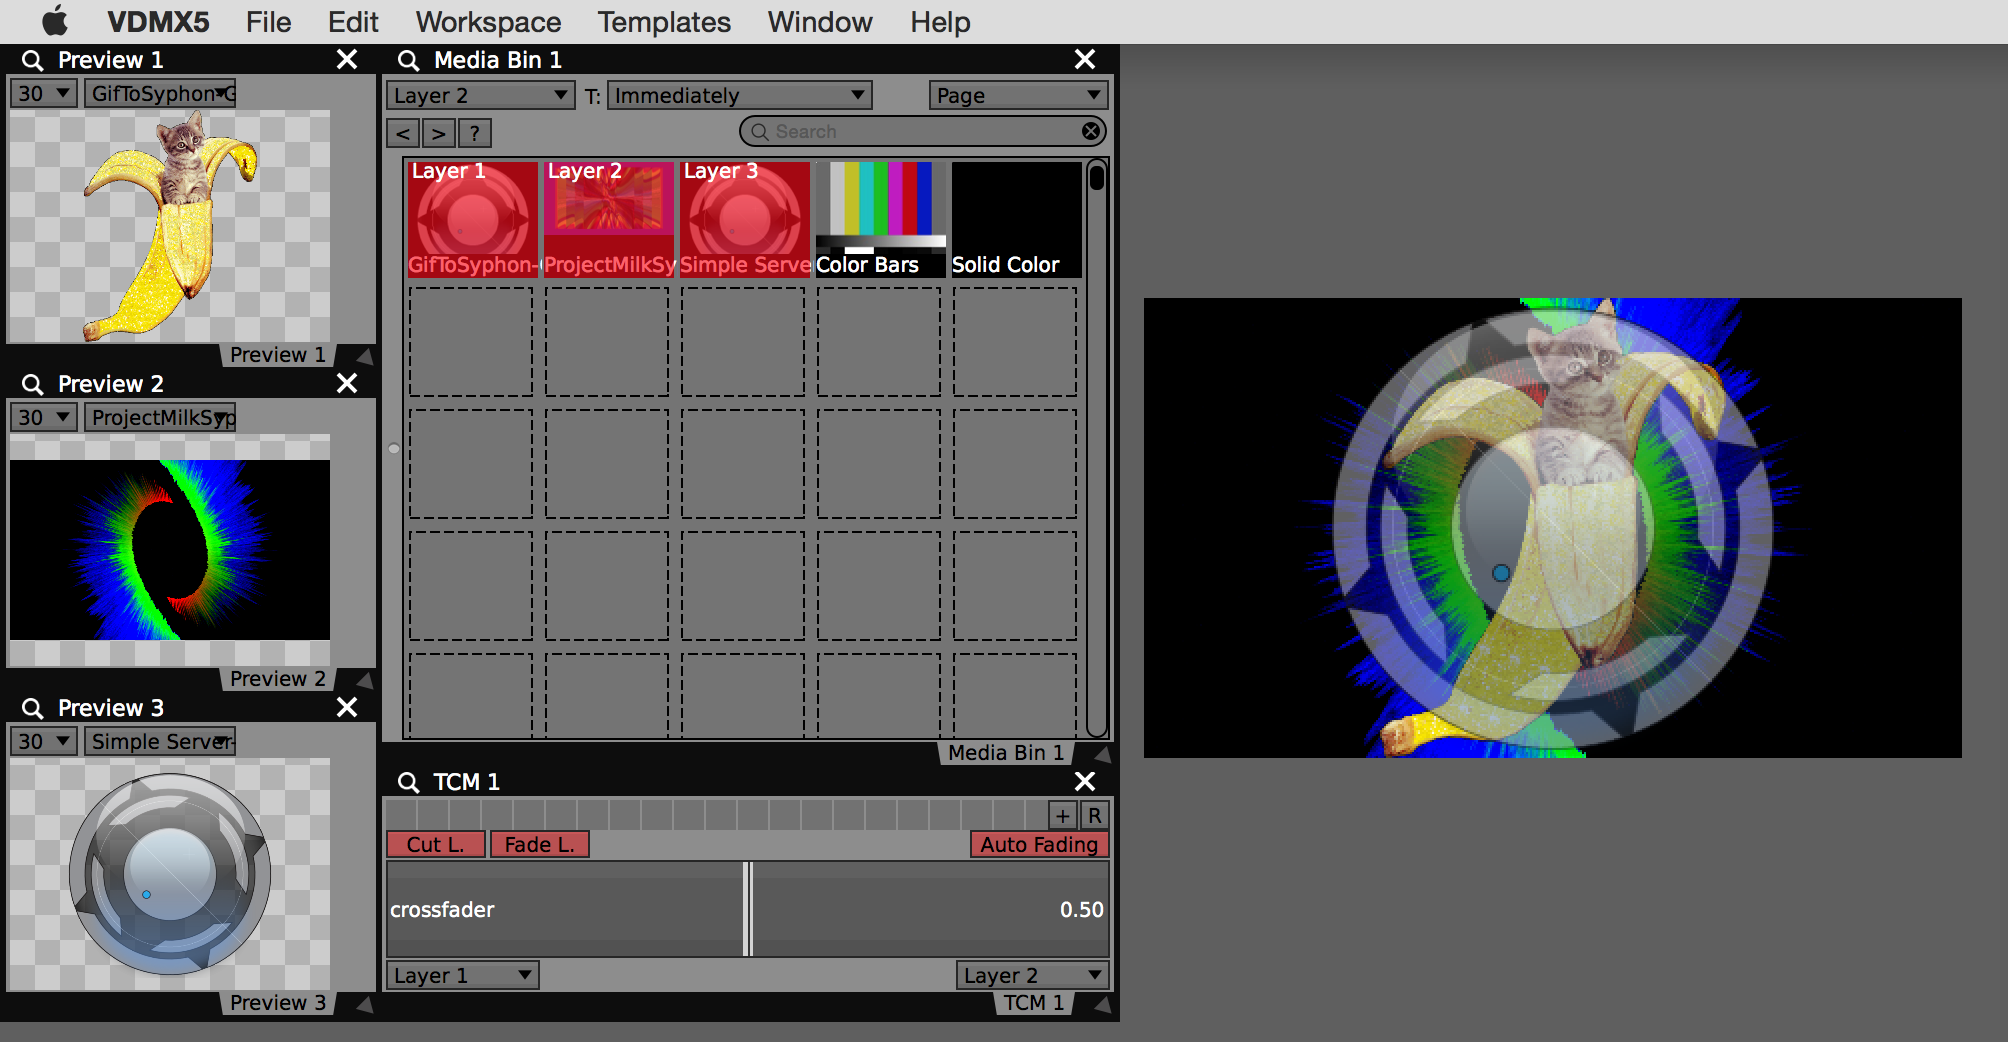 Mixing three Syphon sources in VDMX